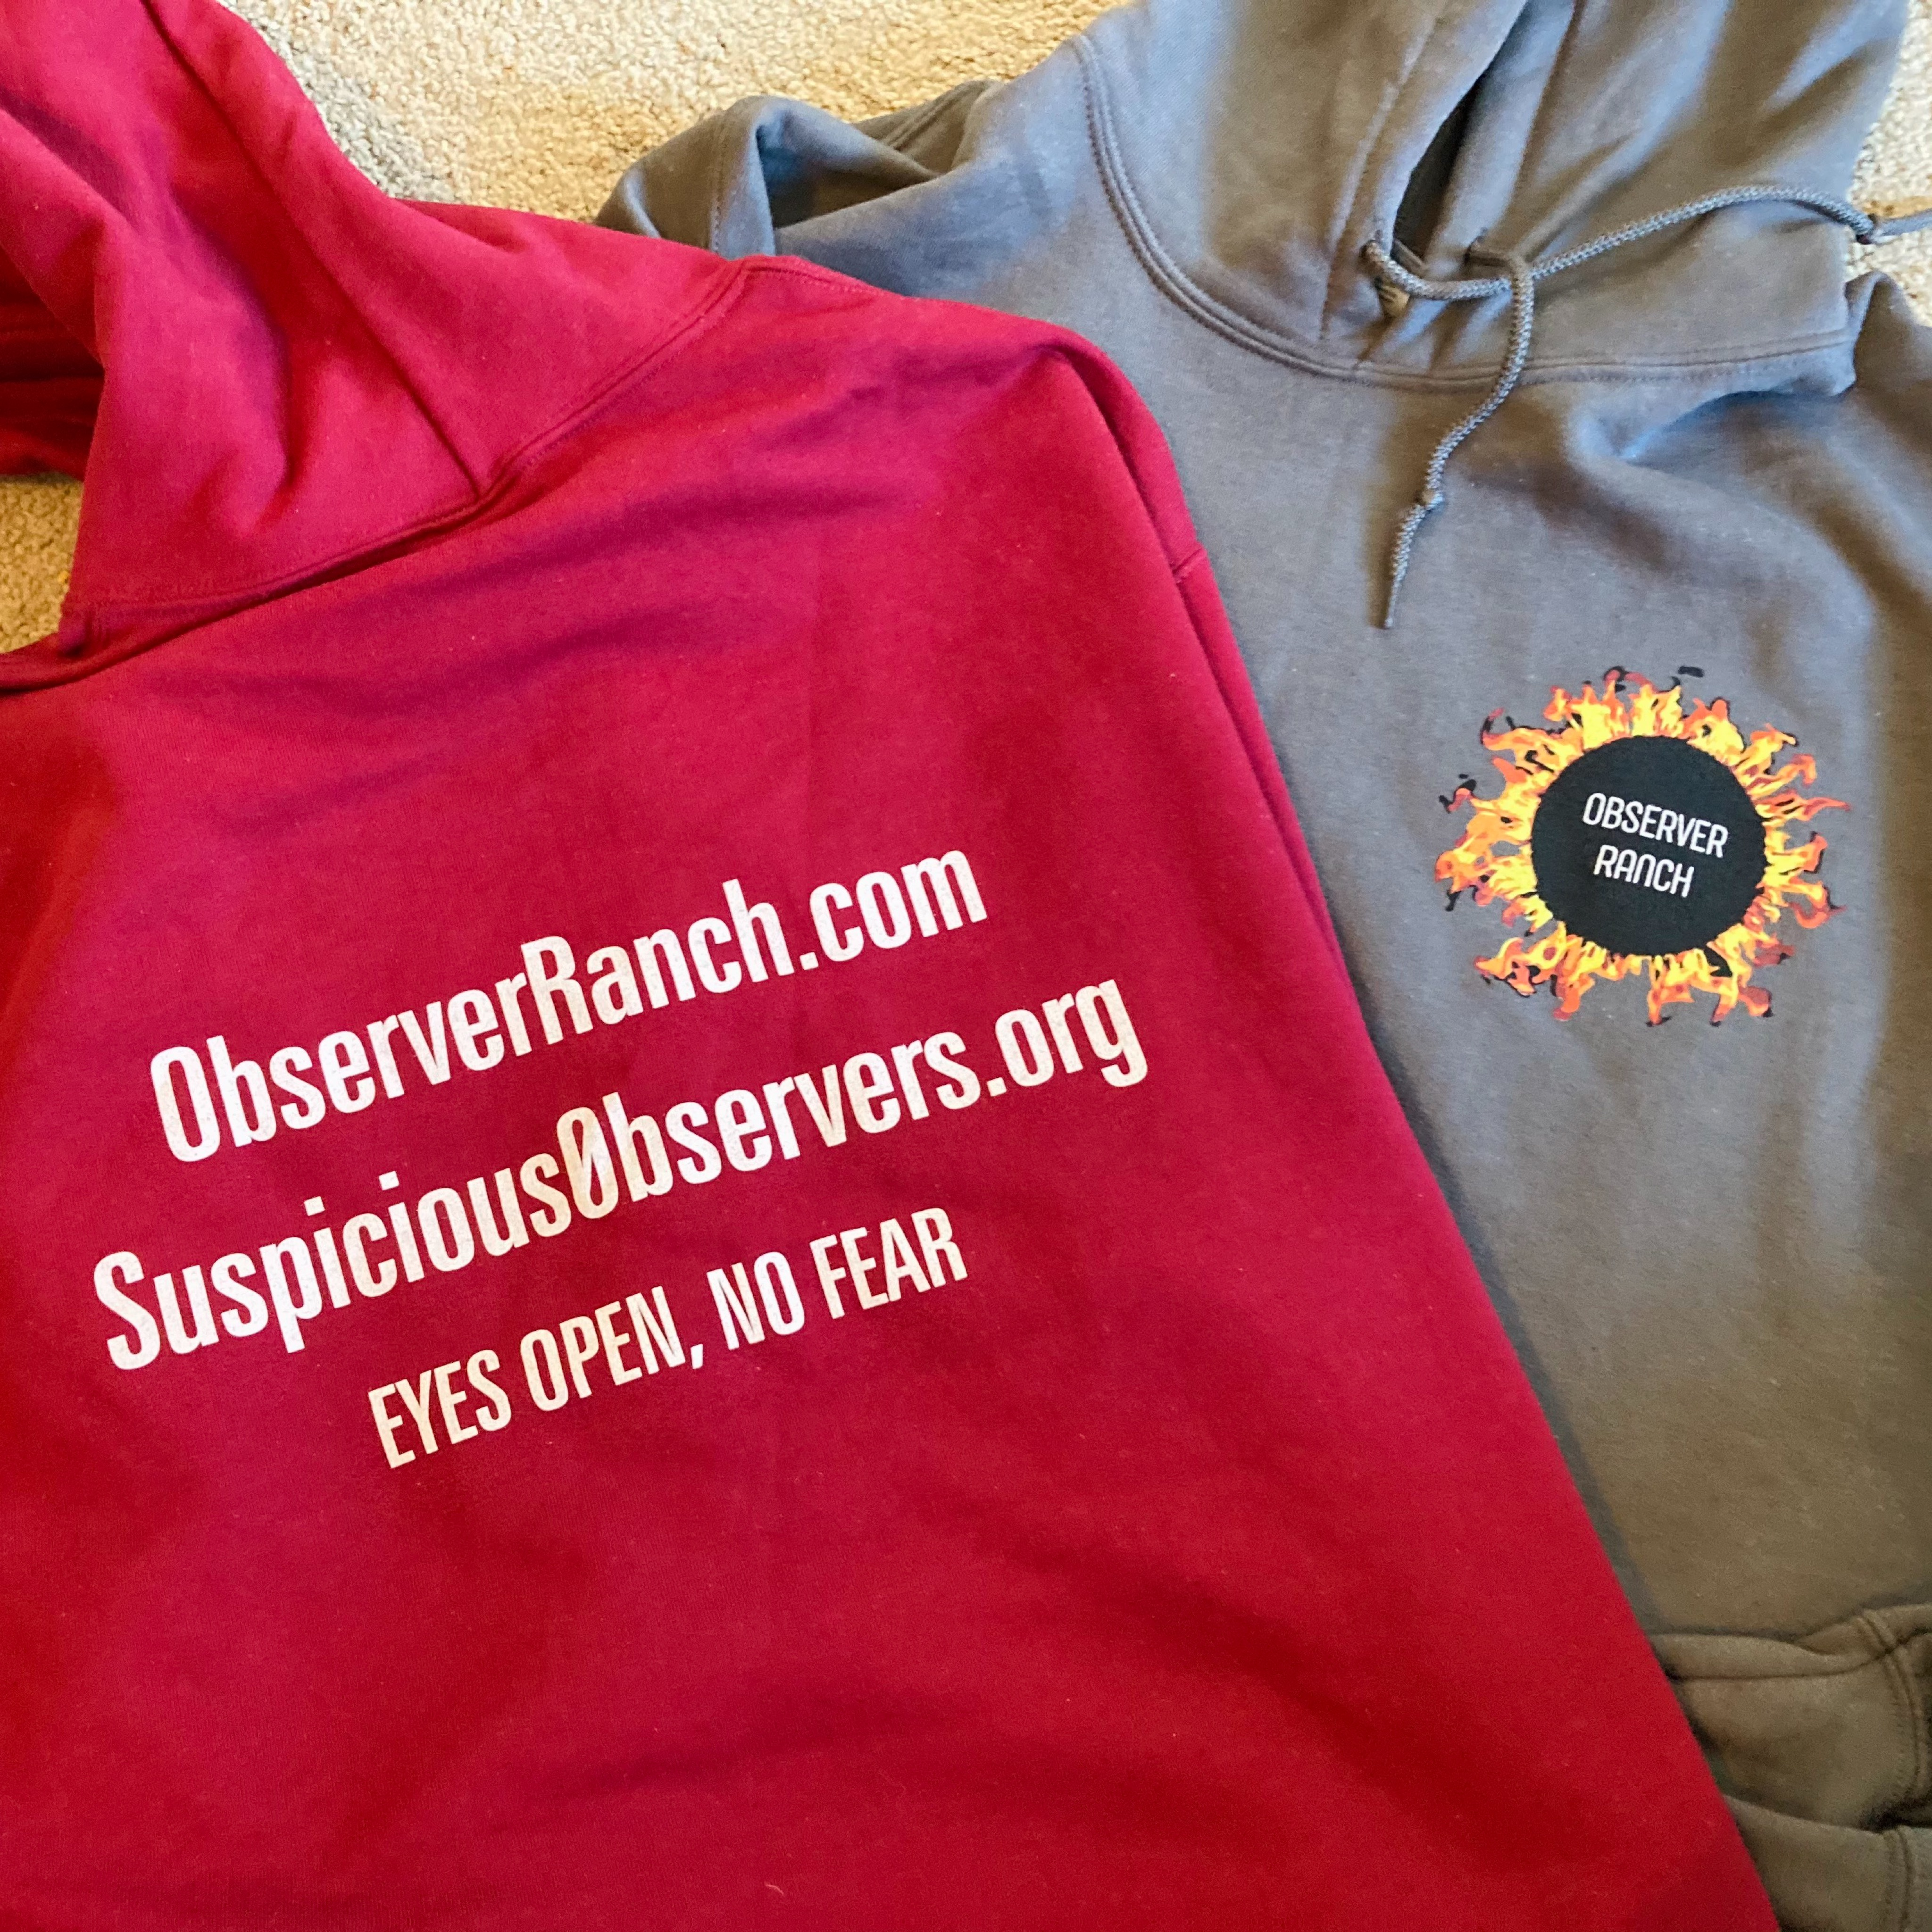 Limited Edition 10 Year Anniversary FOUNDER Observer Ranch/Suspicious0bserver Sweatshirt